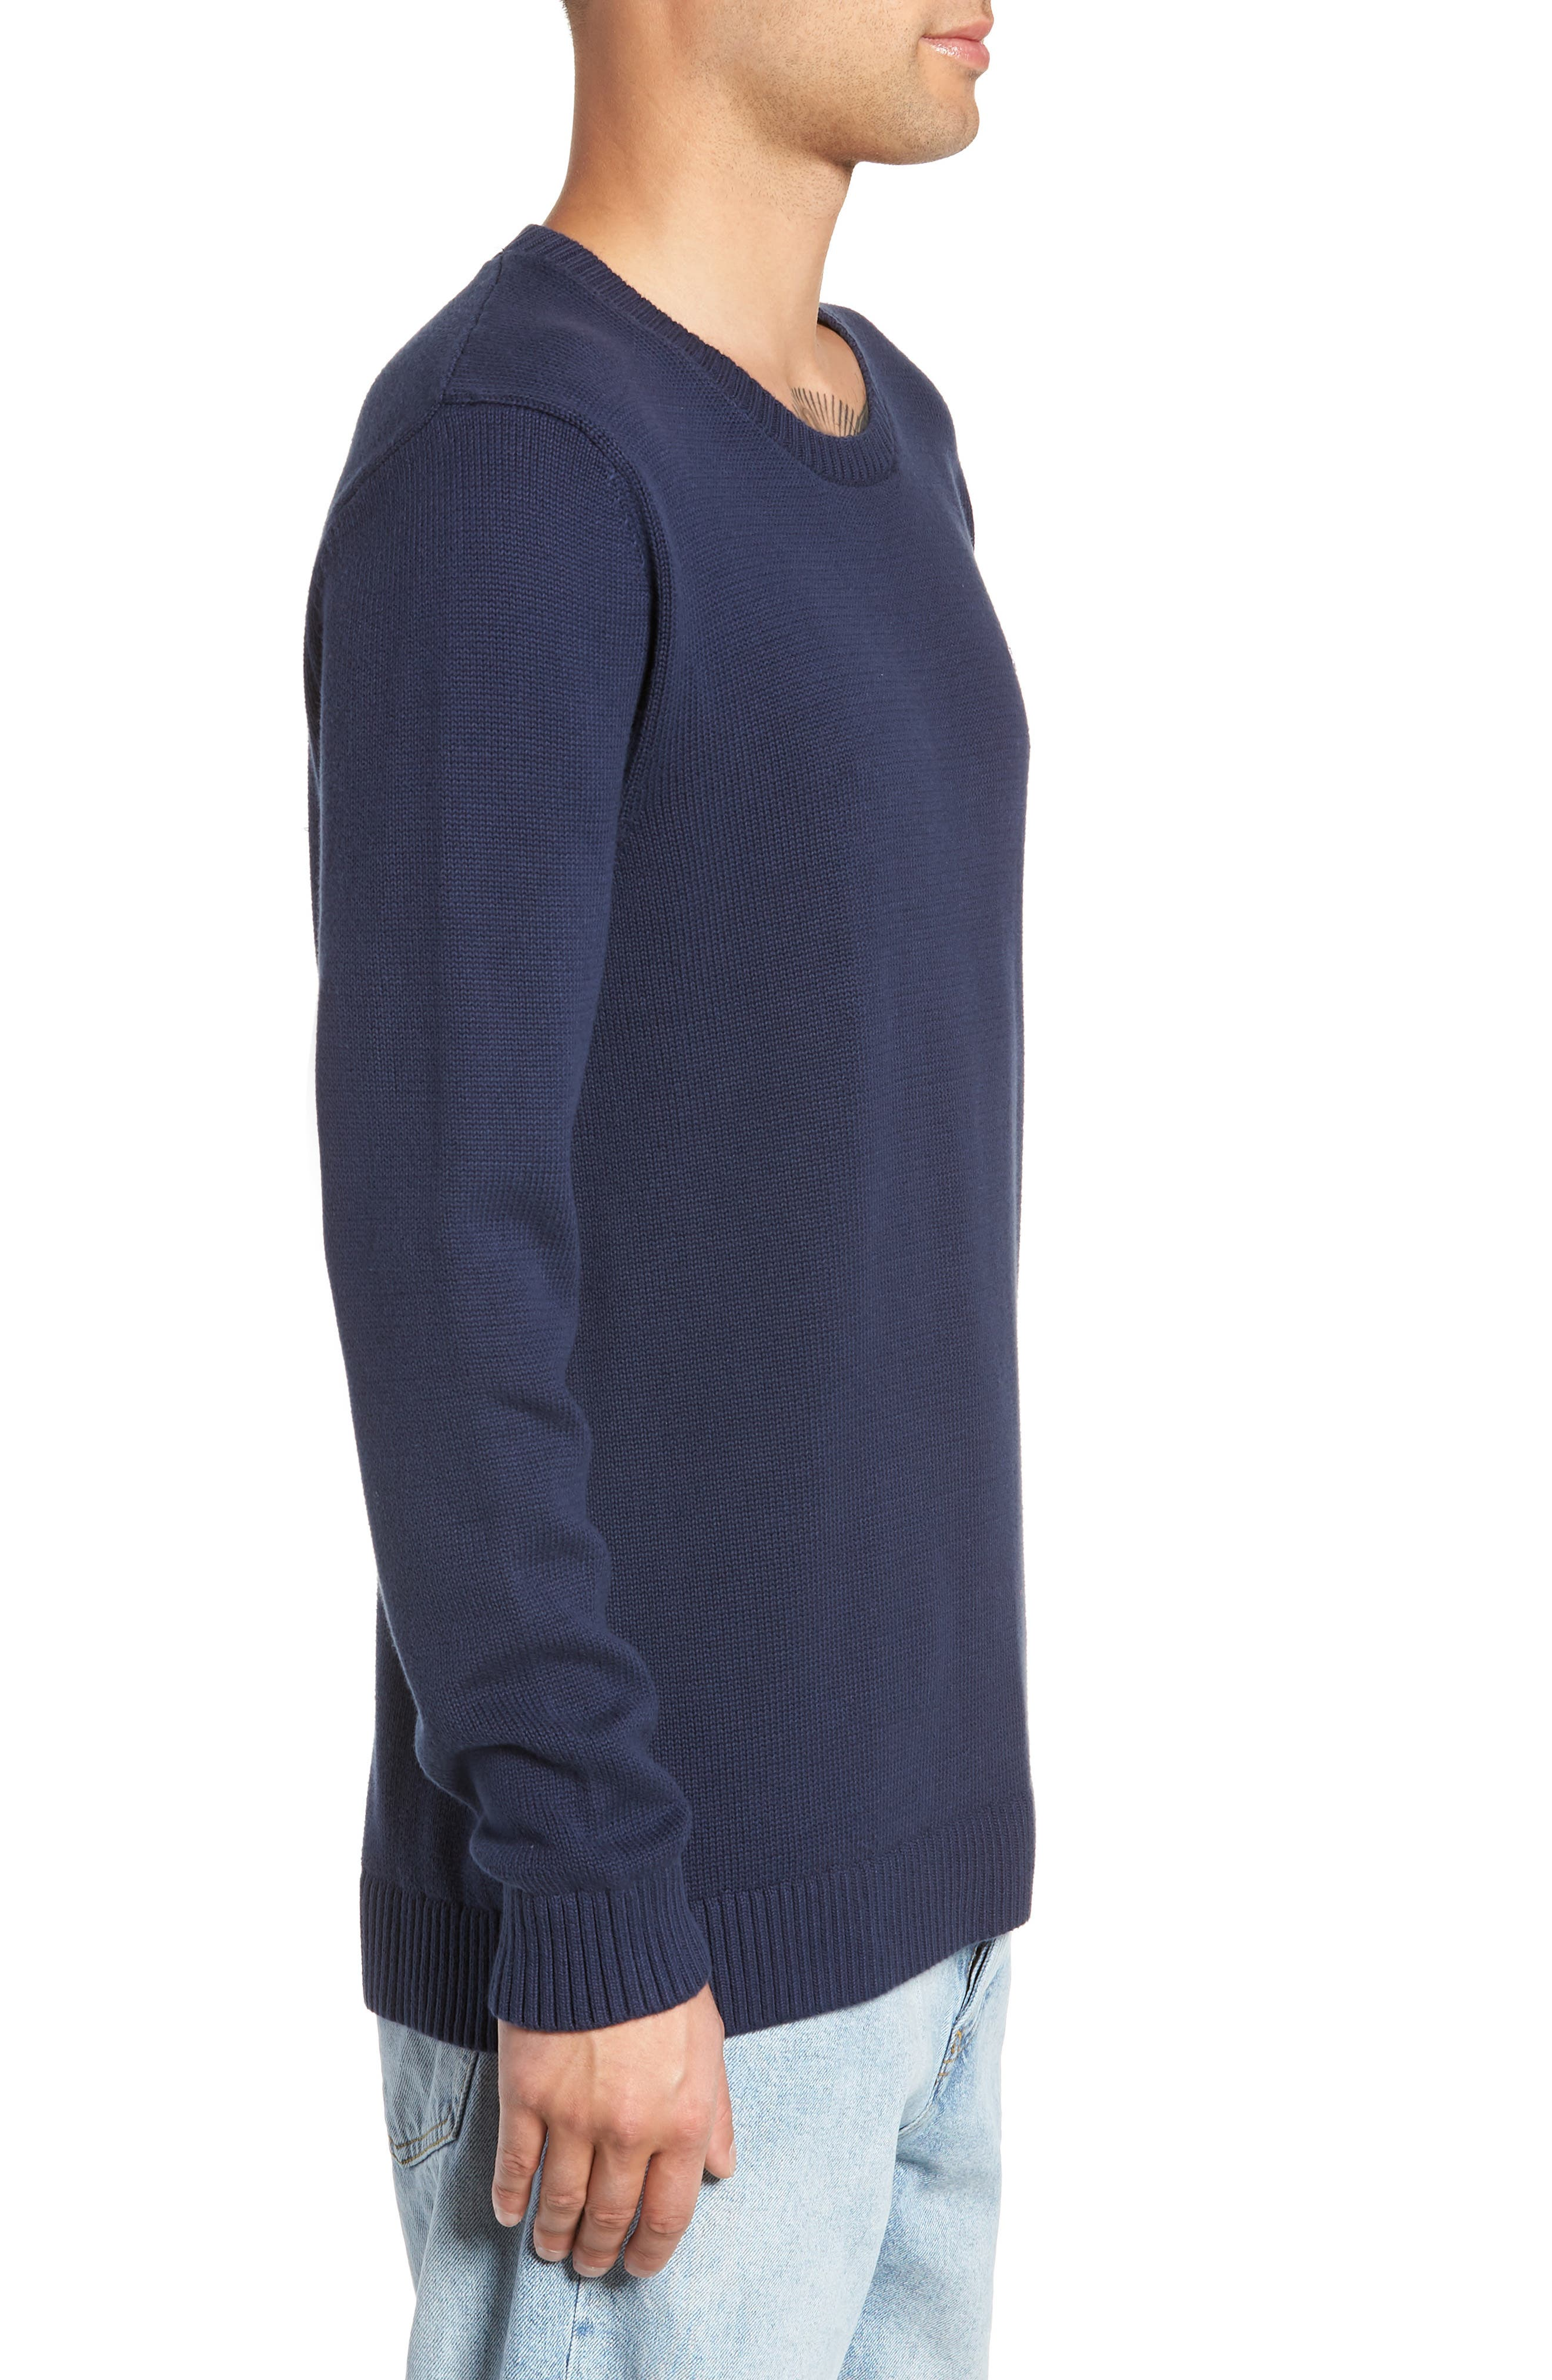 TJM Tommy Classics Sweater,                             Alternate thumbnail 3, color,                             BLACK IRIS